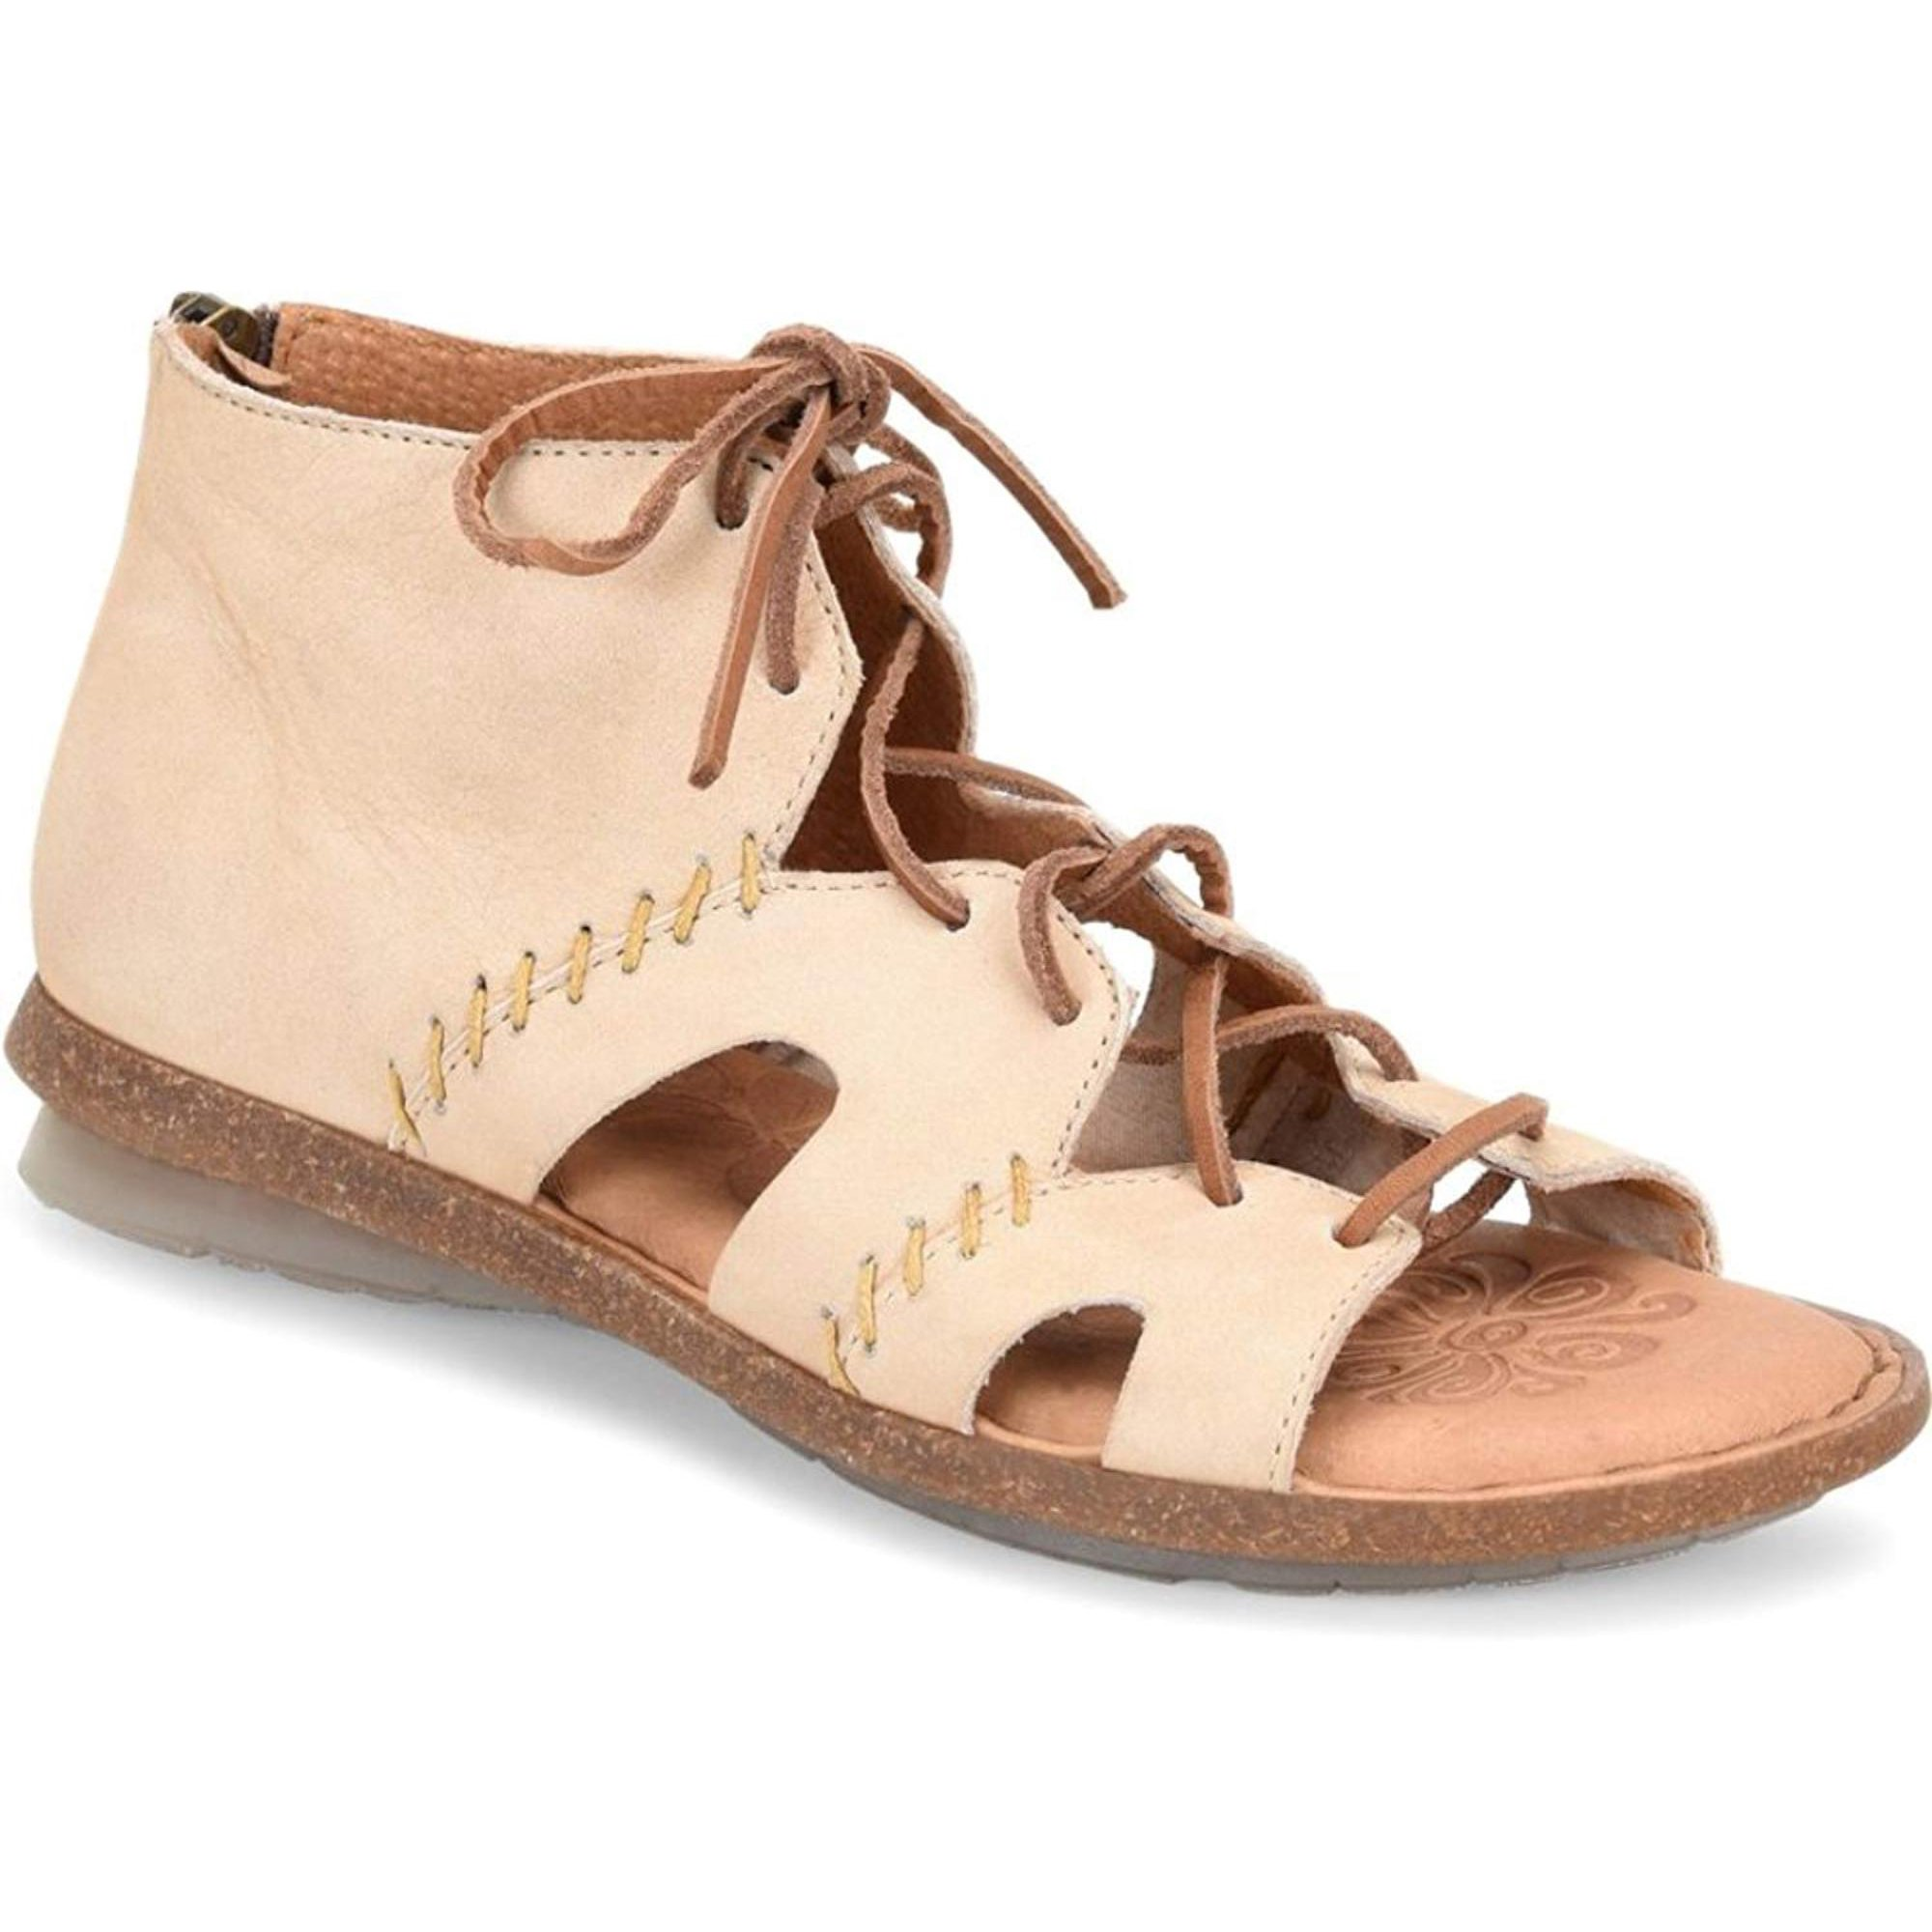 1c454372a970 B.O.C Womens Nea Nubuck Open Toe Casual Gladiator Sandals ...